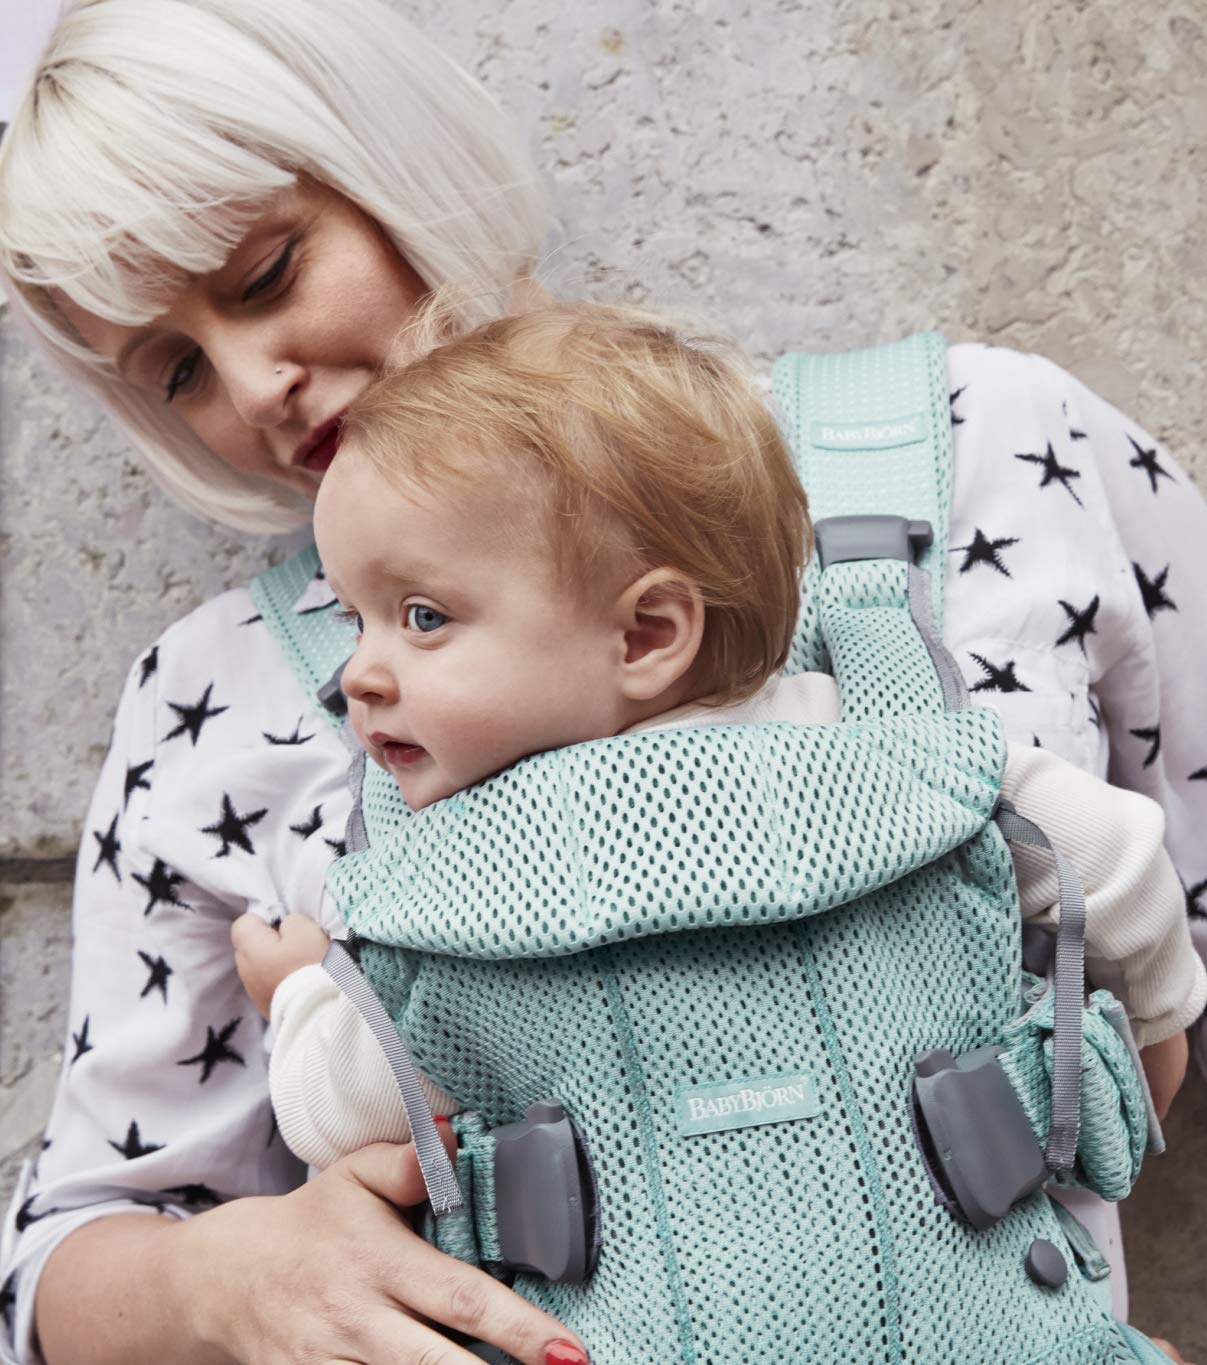 BABYBJÖRN Baby Carrier One Air, 3D Mesh, Frosted Green, 2018 Edition Baby Bjorn The latest version (2018) with soft and breathable mesh that dries quickly Ergonomic baby carrier with excellent support 4 carrying positions: facing in (two height positions), facing out or on your back 4